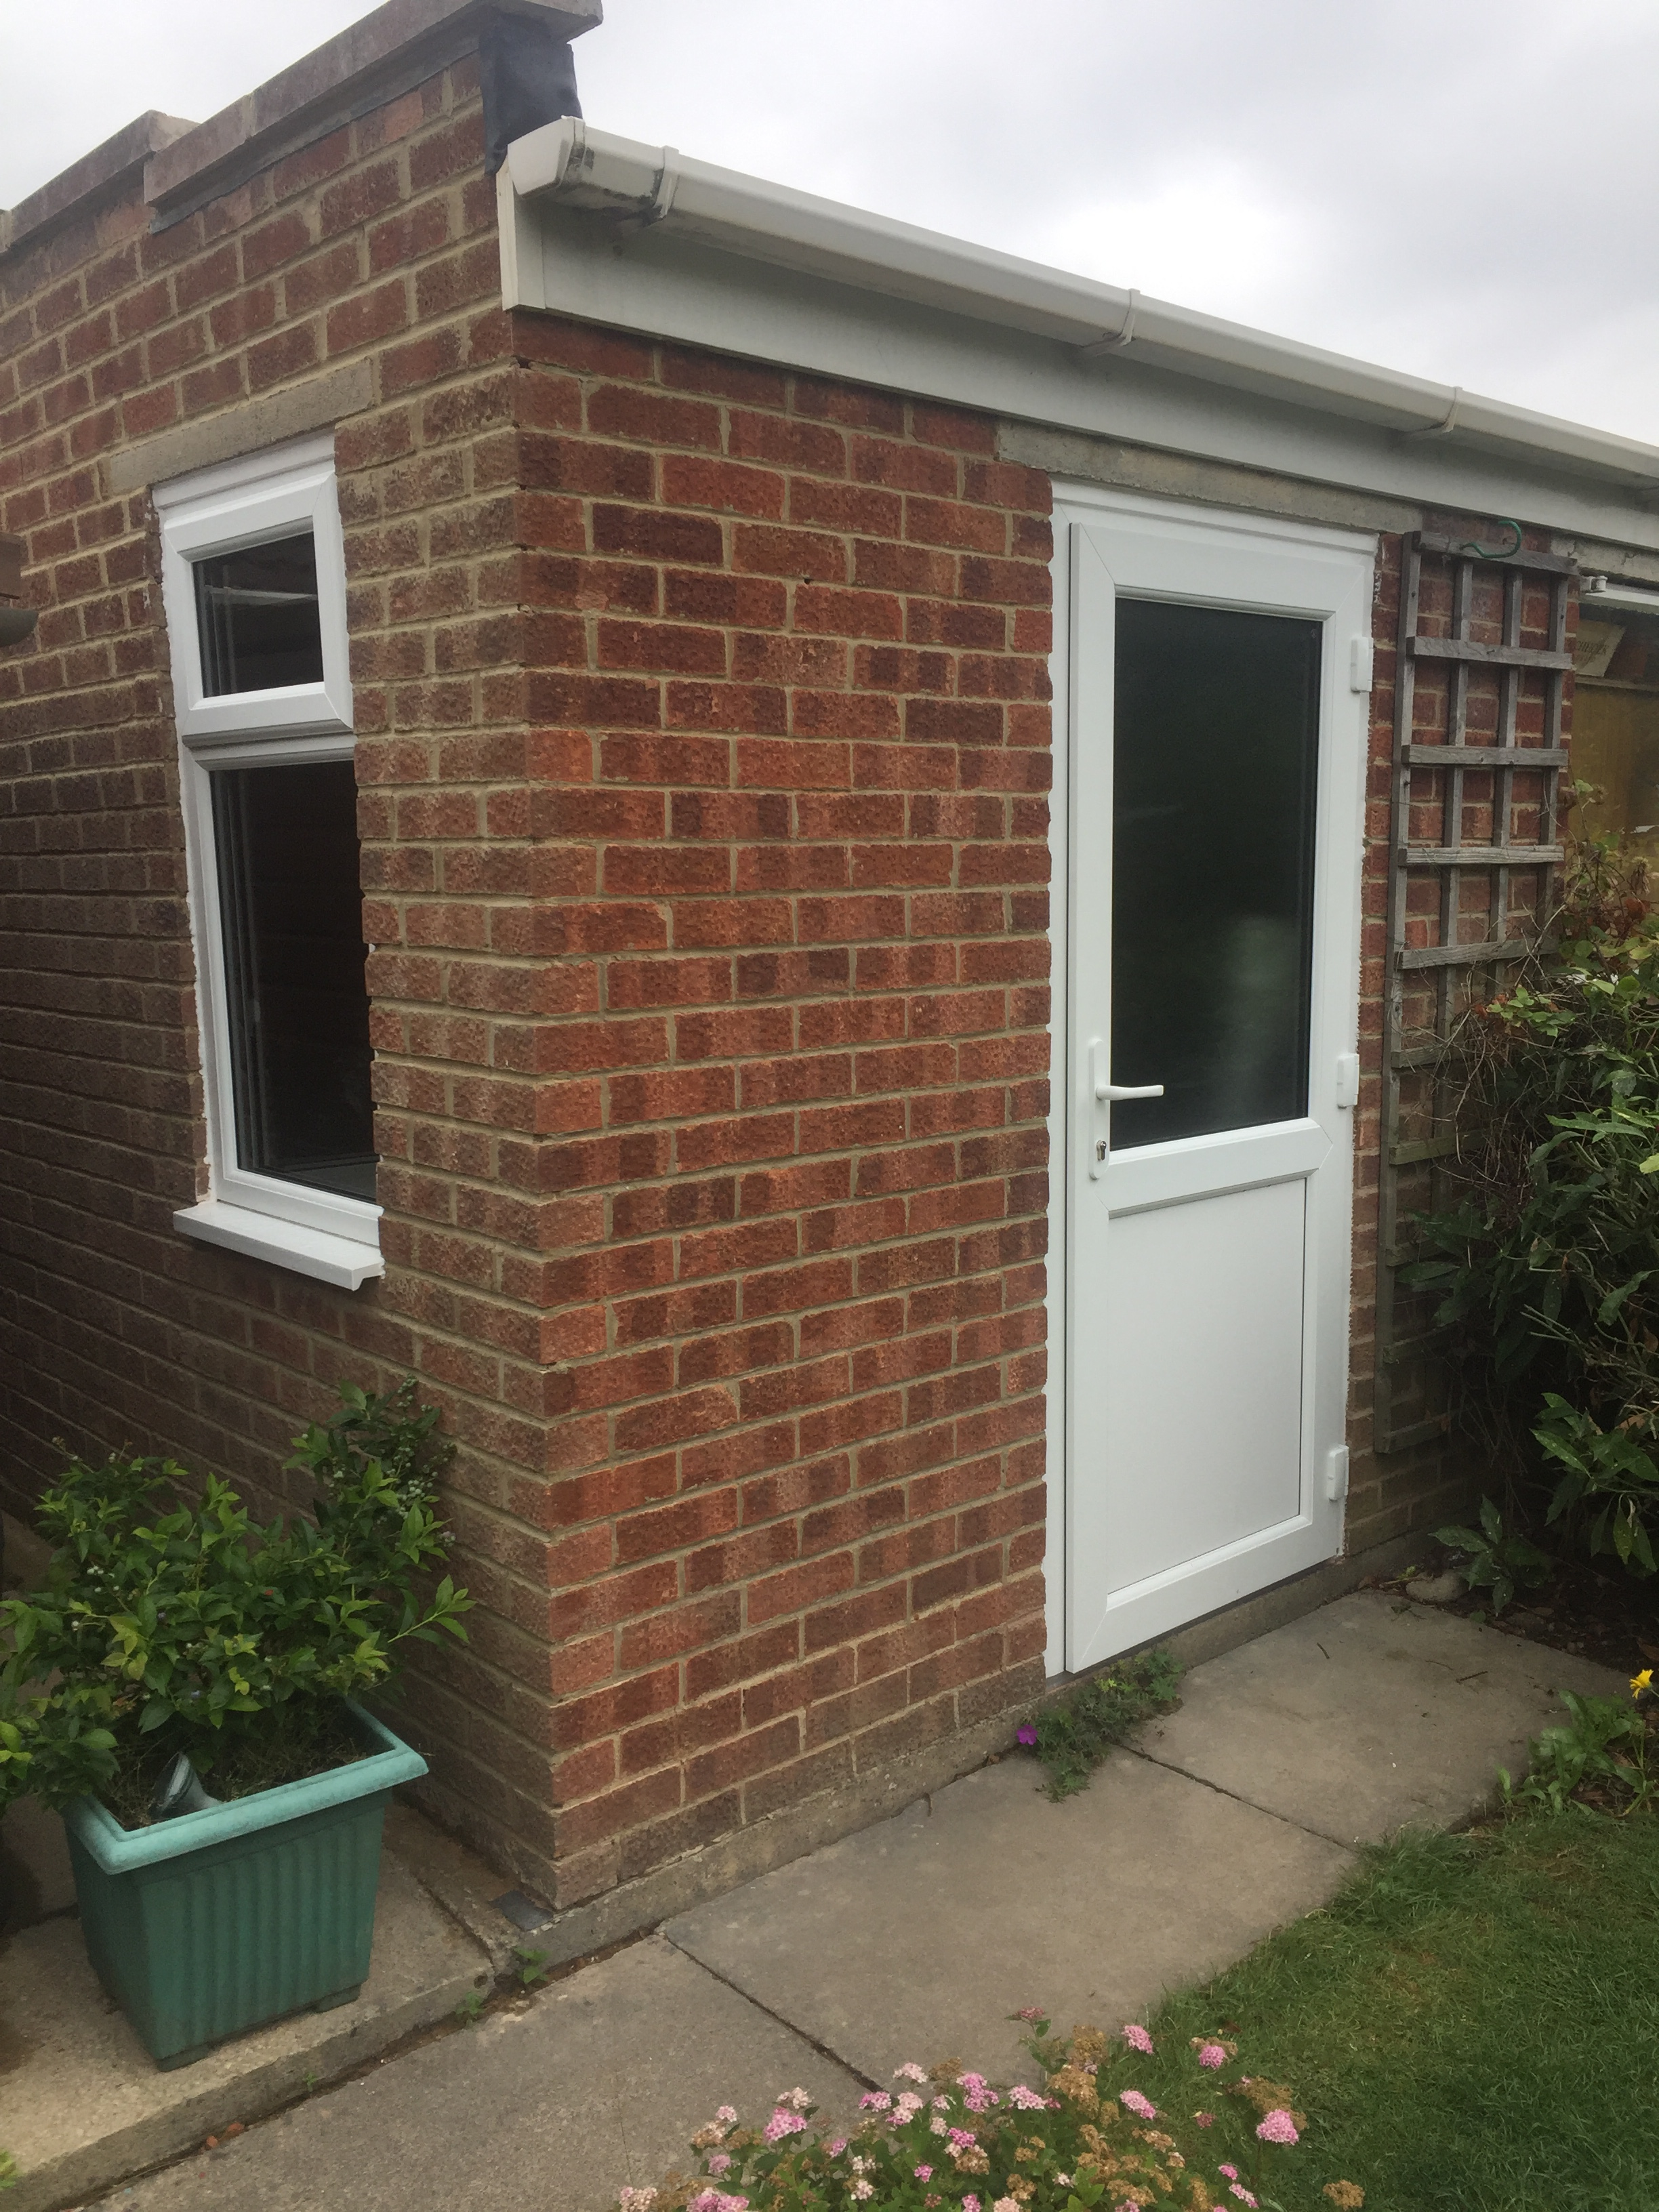 Doors Windows: New PVCu Door & Window To Existing Garage